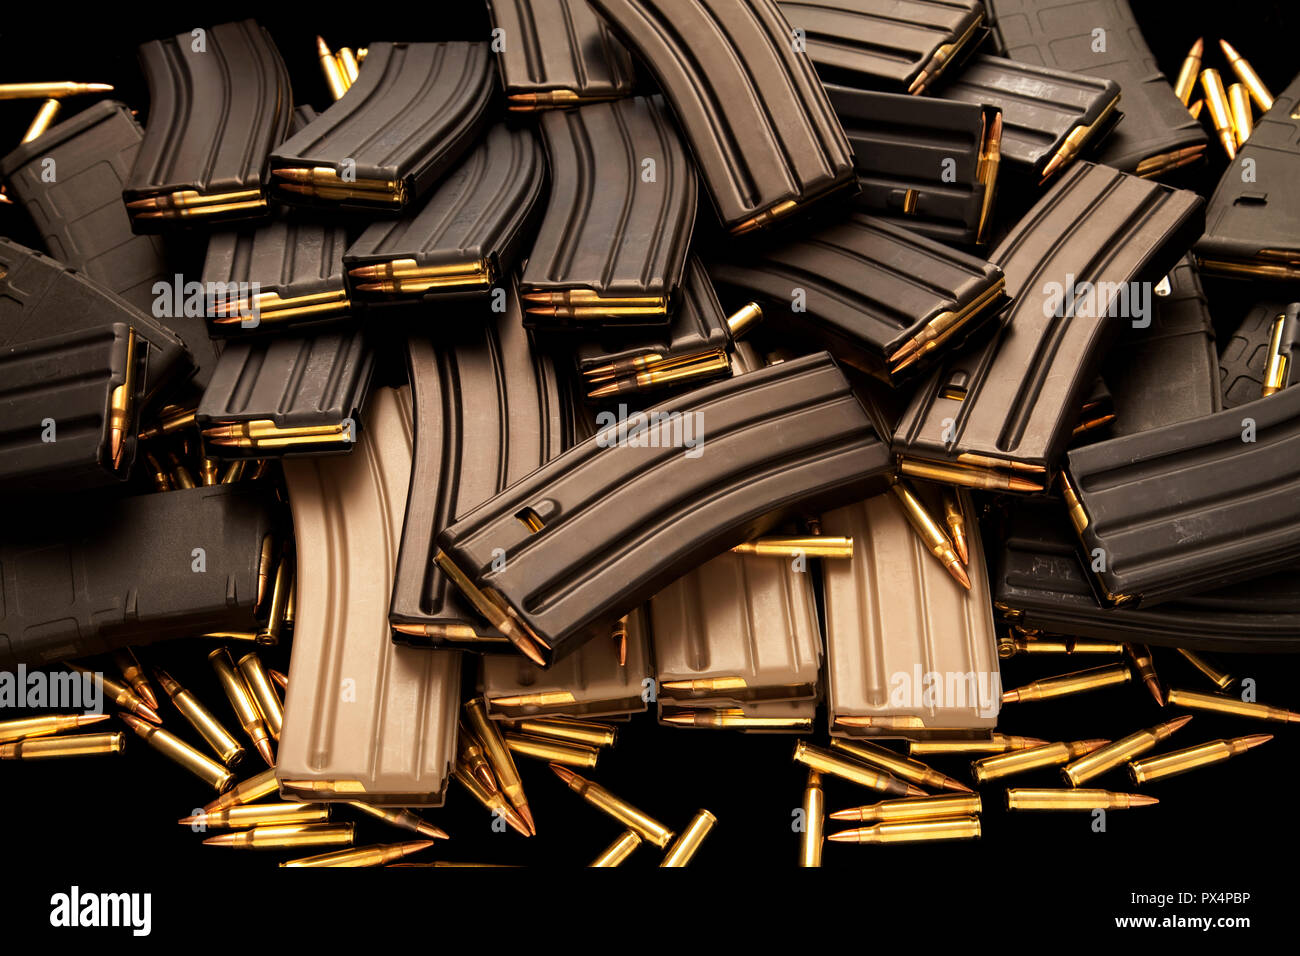 High capacity AR-15 ammunition magazines. - Stock Image